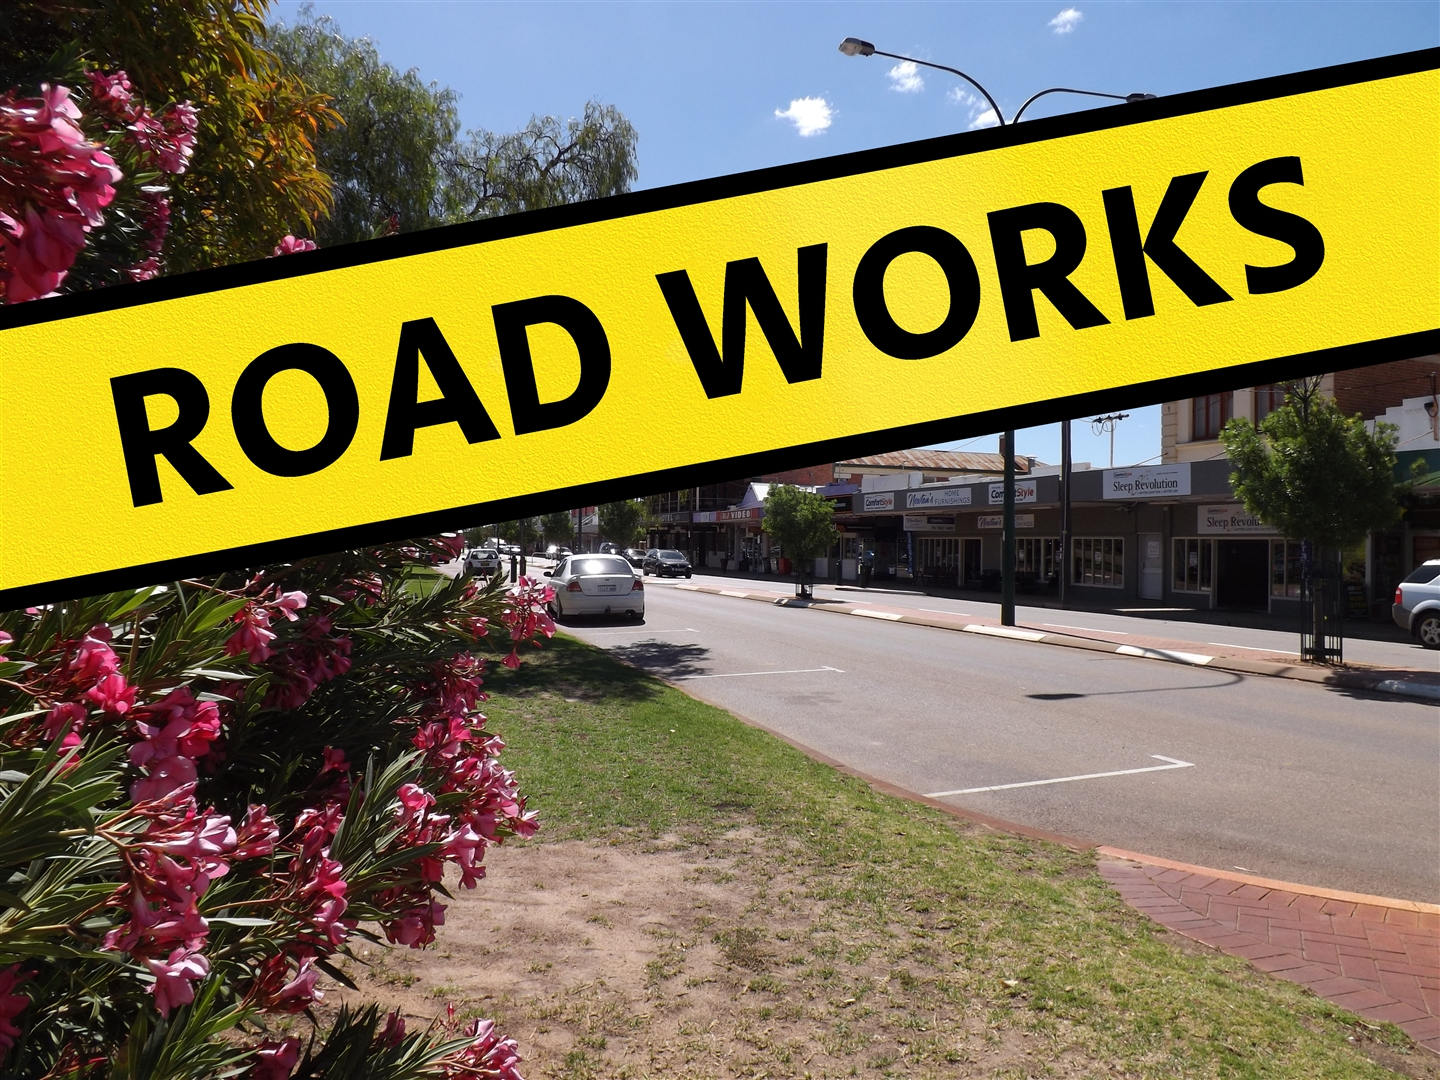 Shire Road Works